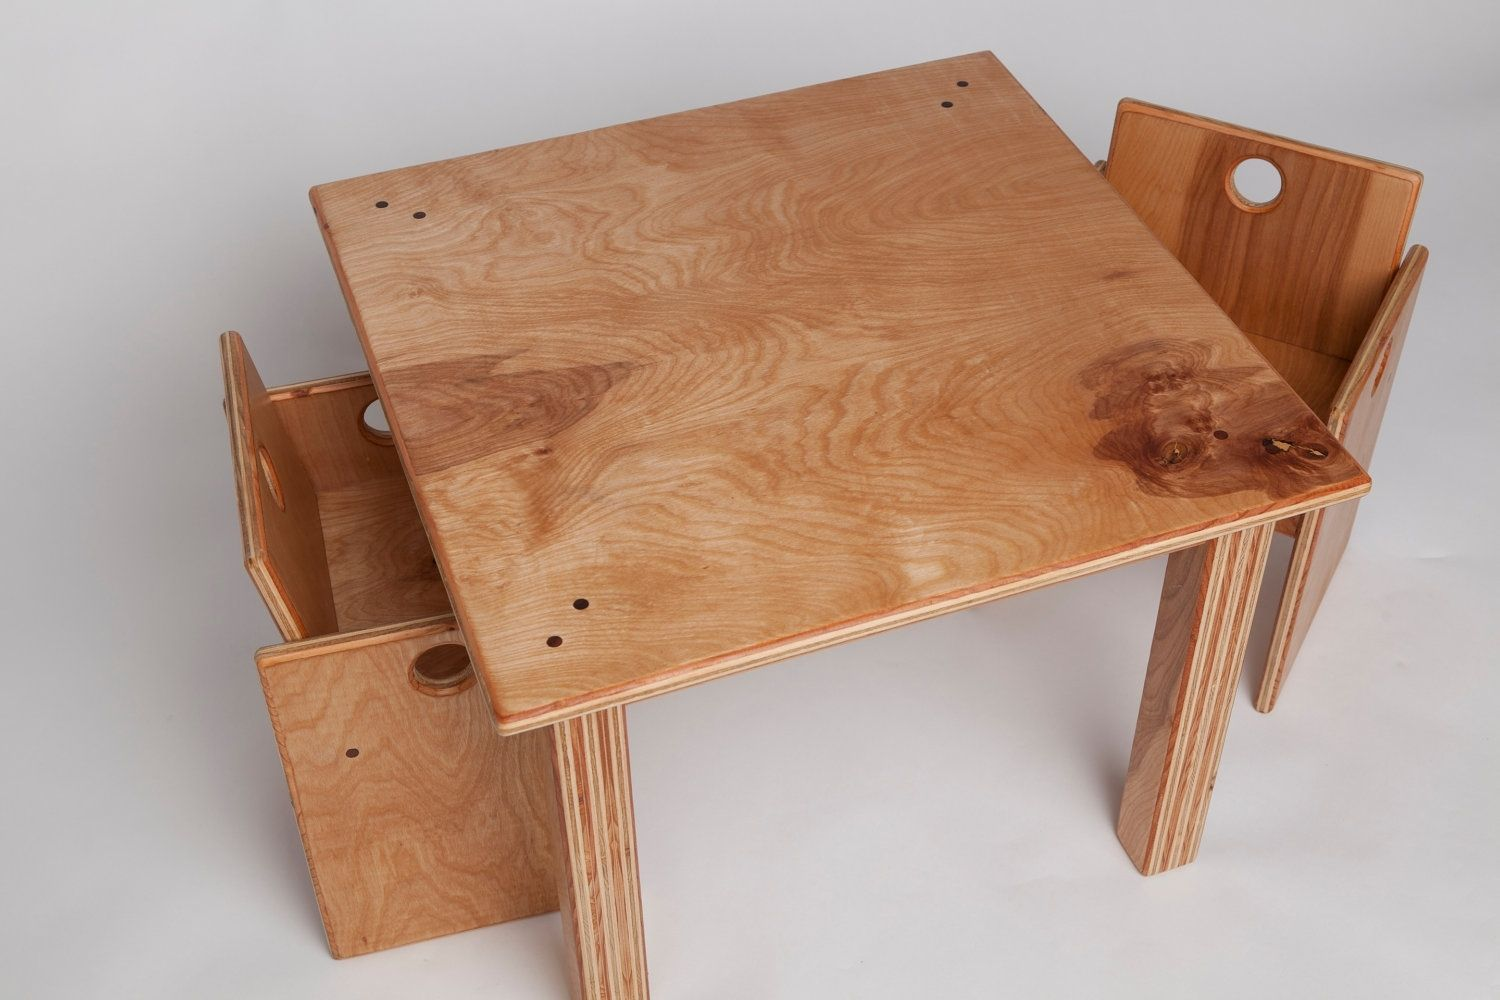 Wooden Table And Chairs Custom Made Children 39s Wooden Table And Chair Set By Fast